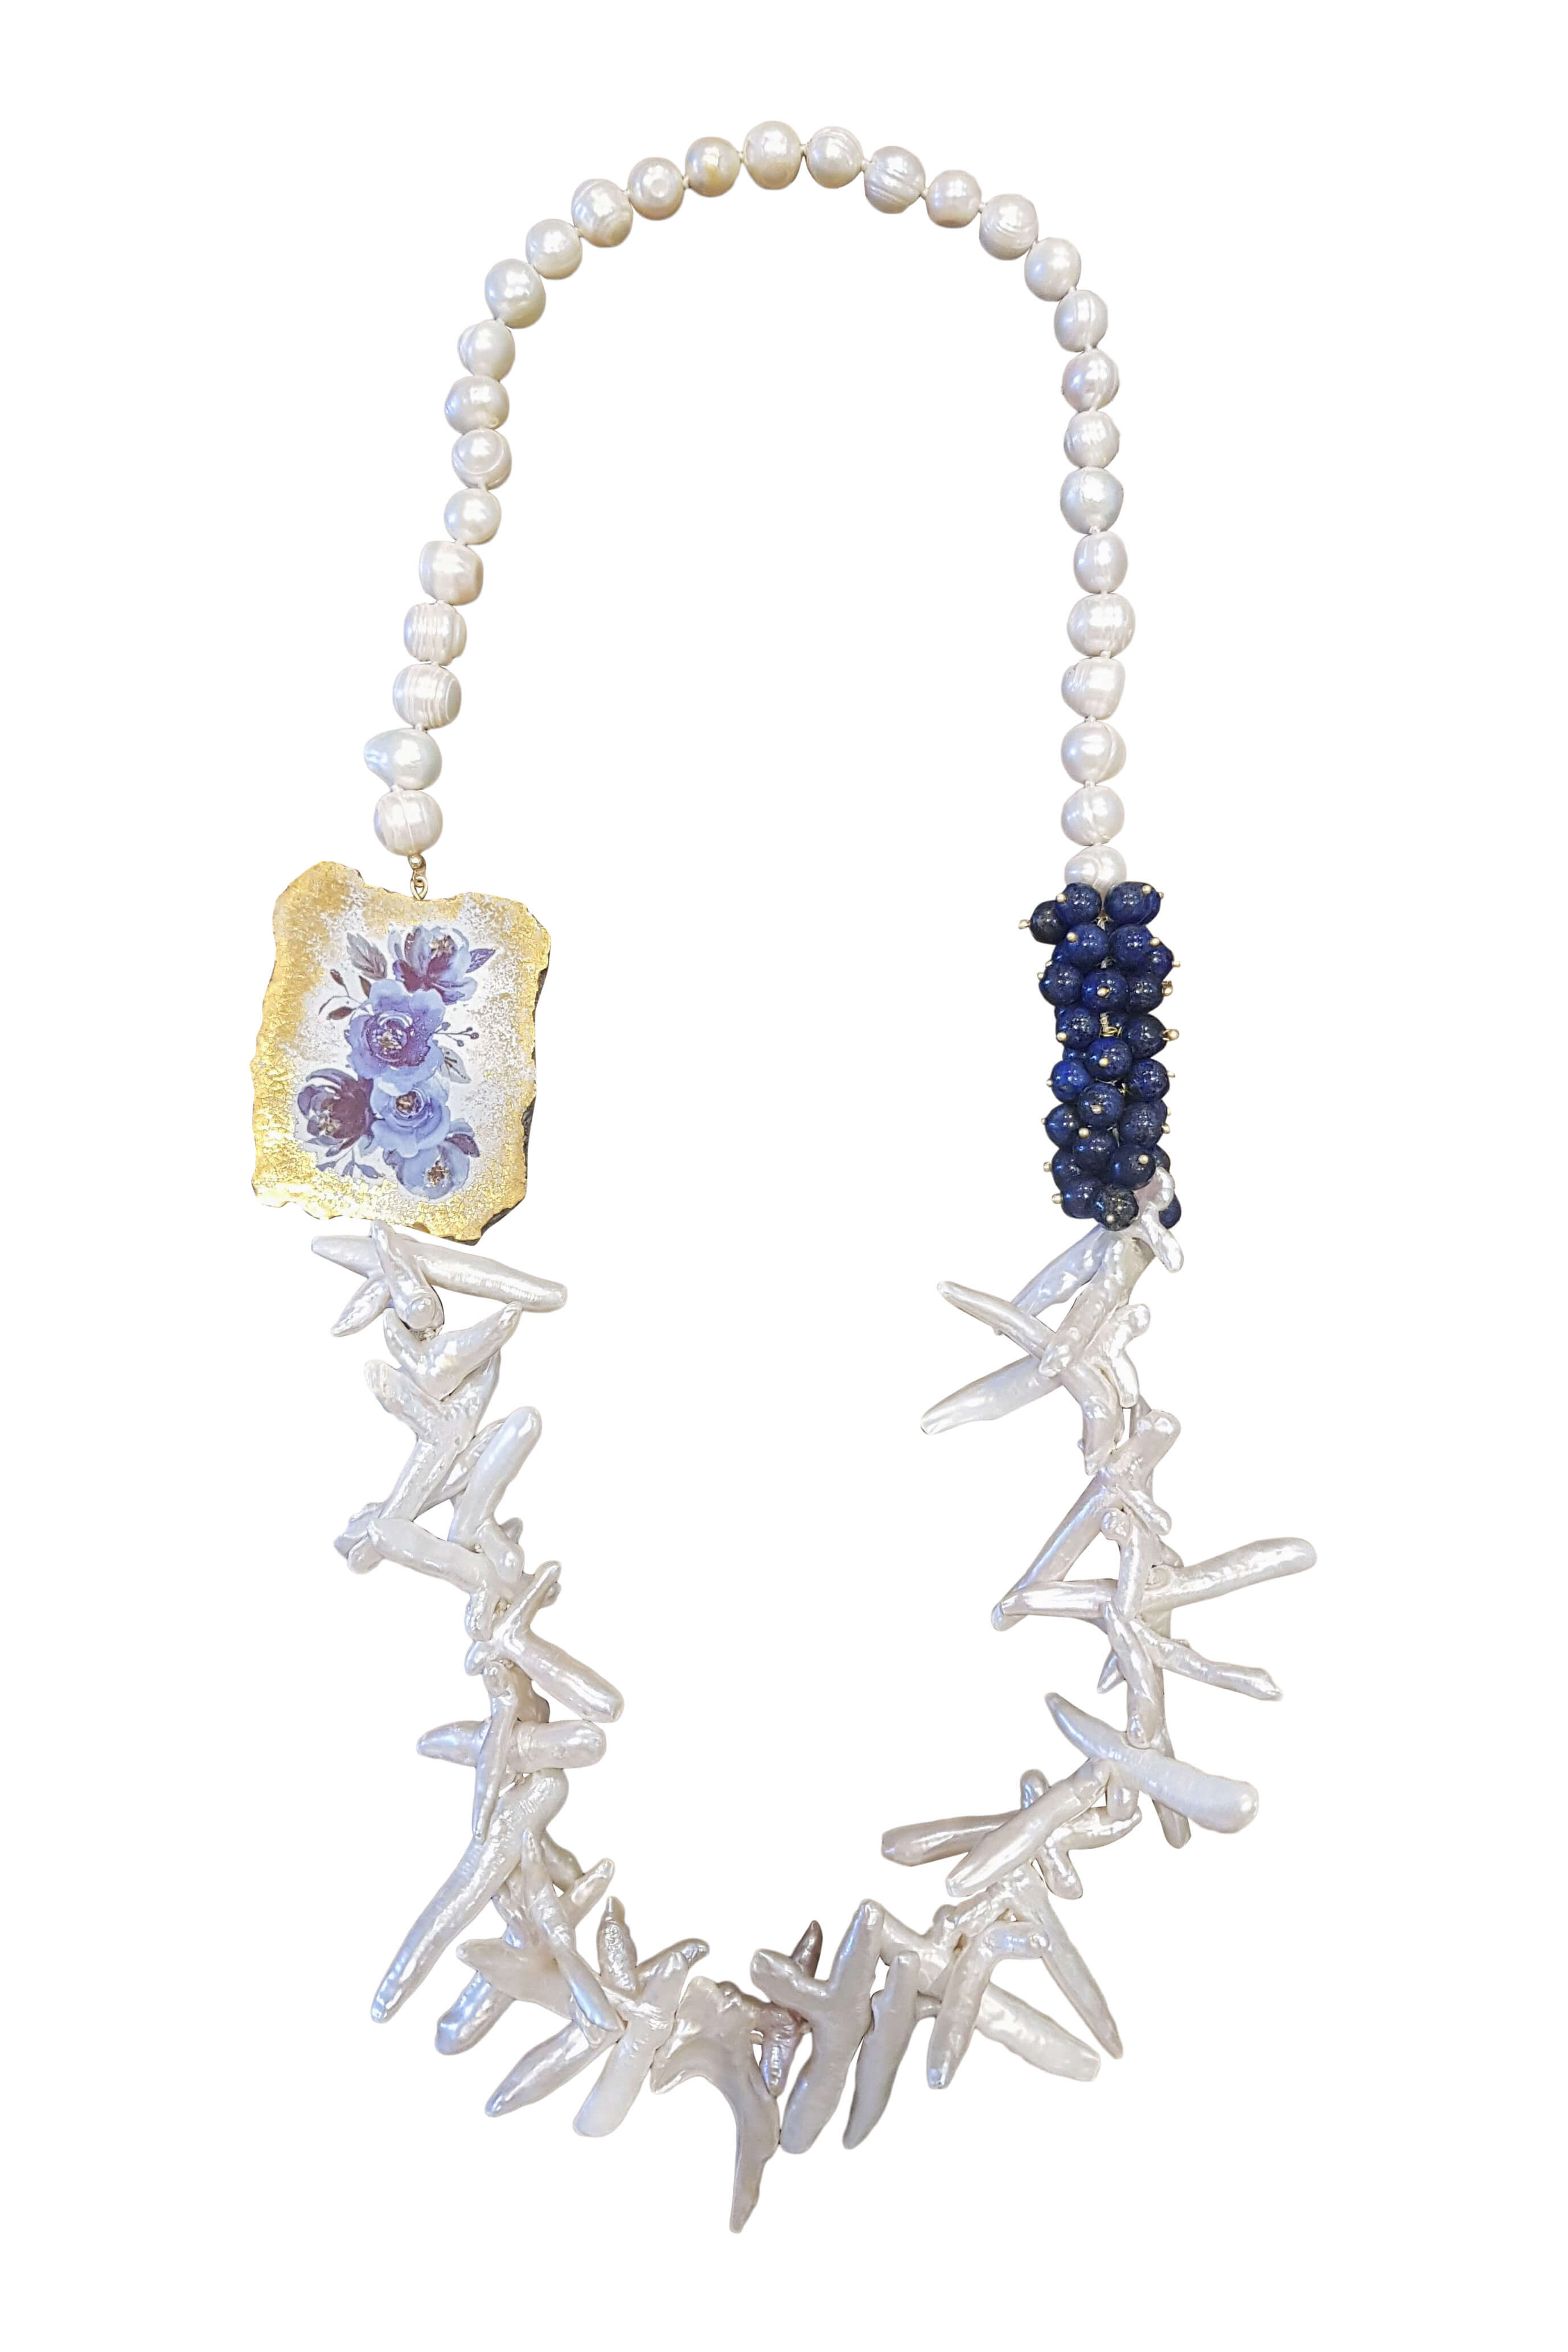 necklace with moss quartz, sweet water pearls, white corals and floral painted ceramics PONZA